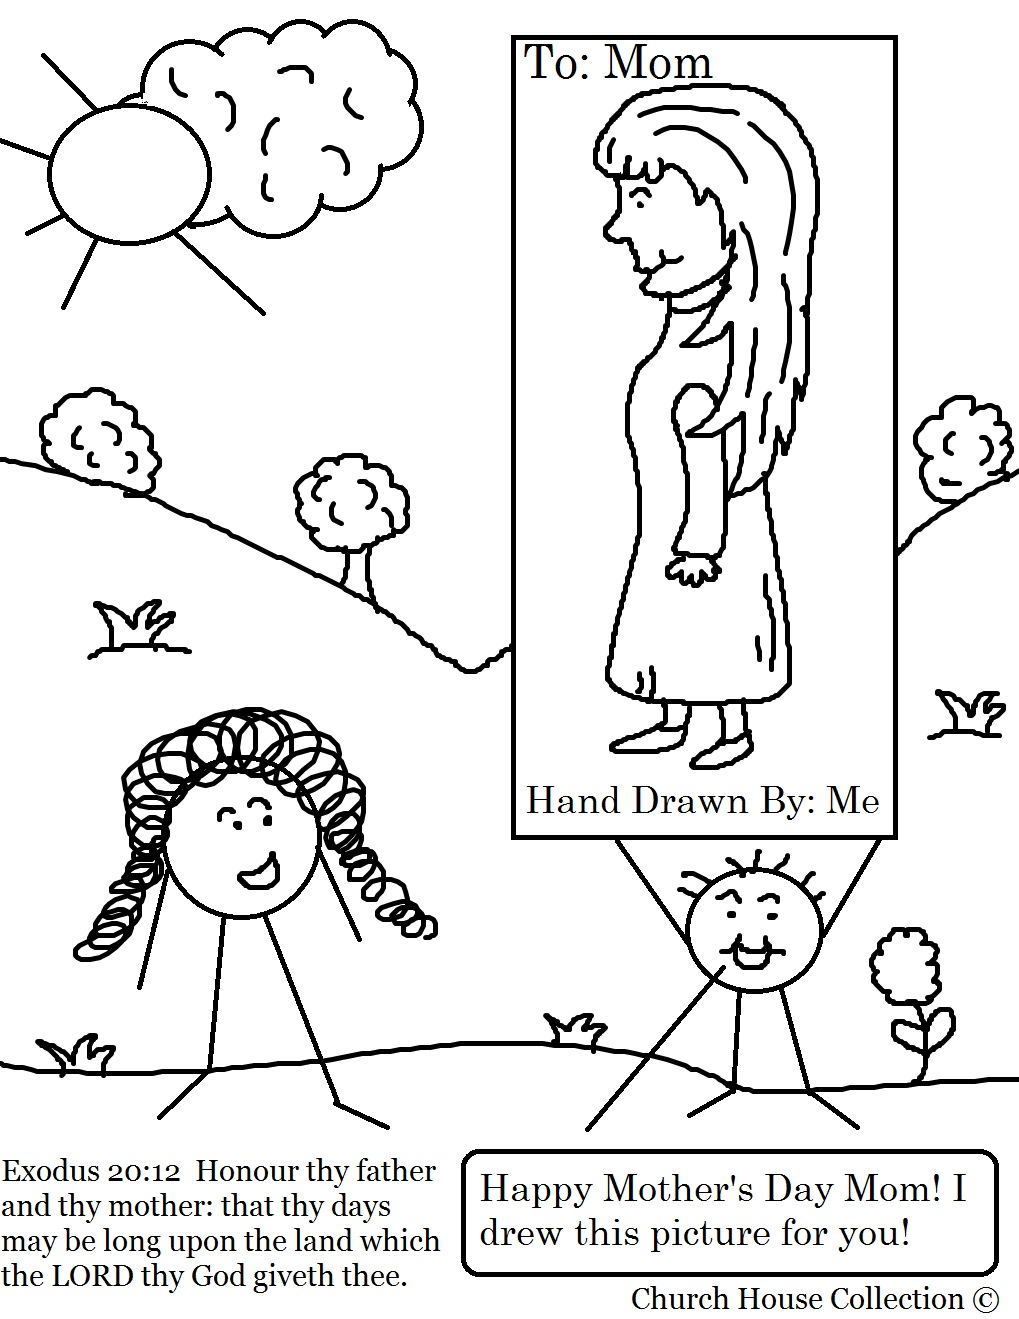 Church House Collection Blog: Mother's Day Coloring Page